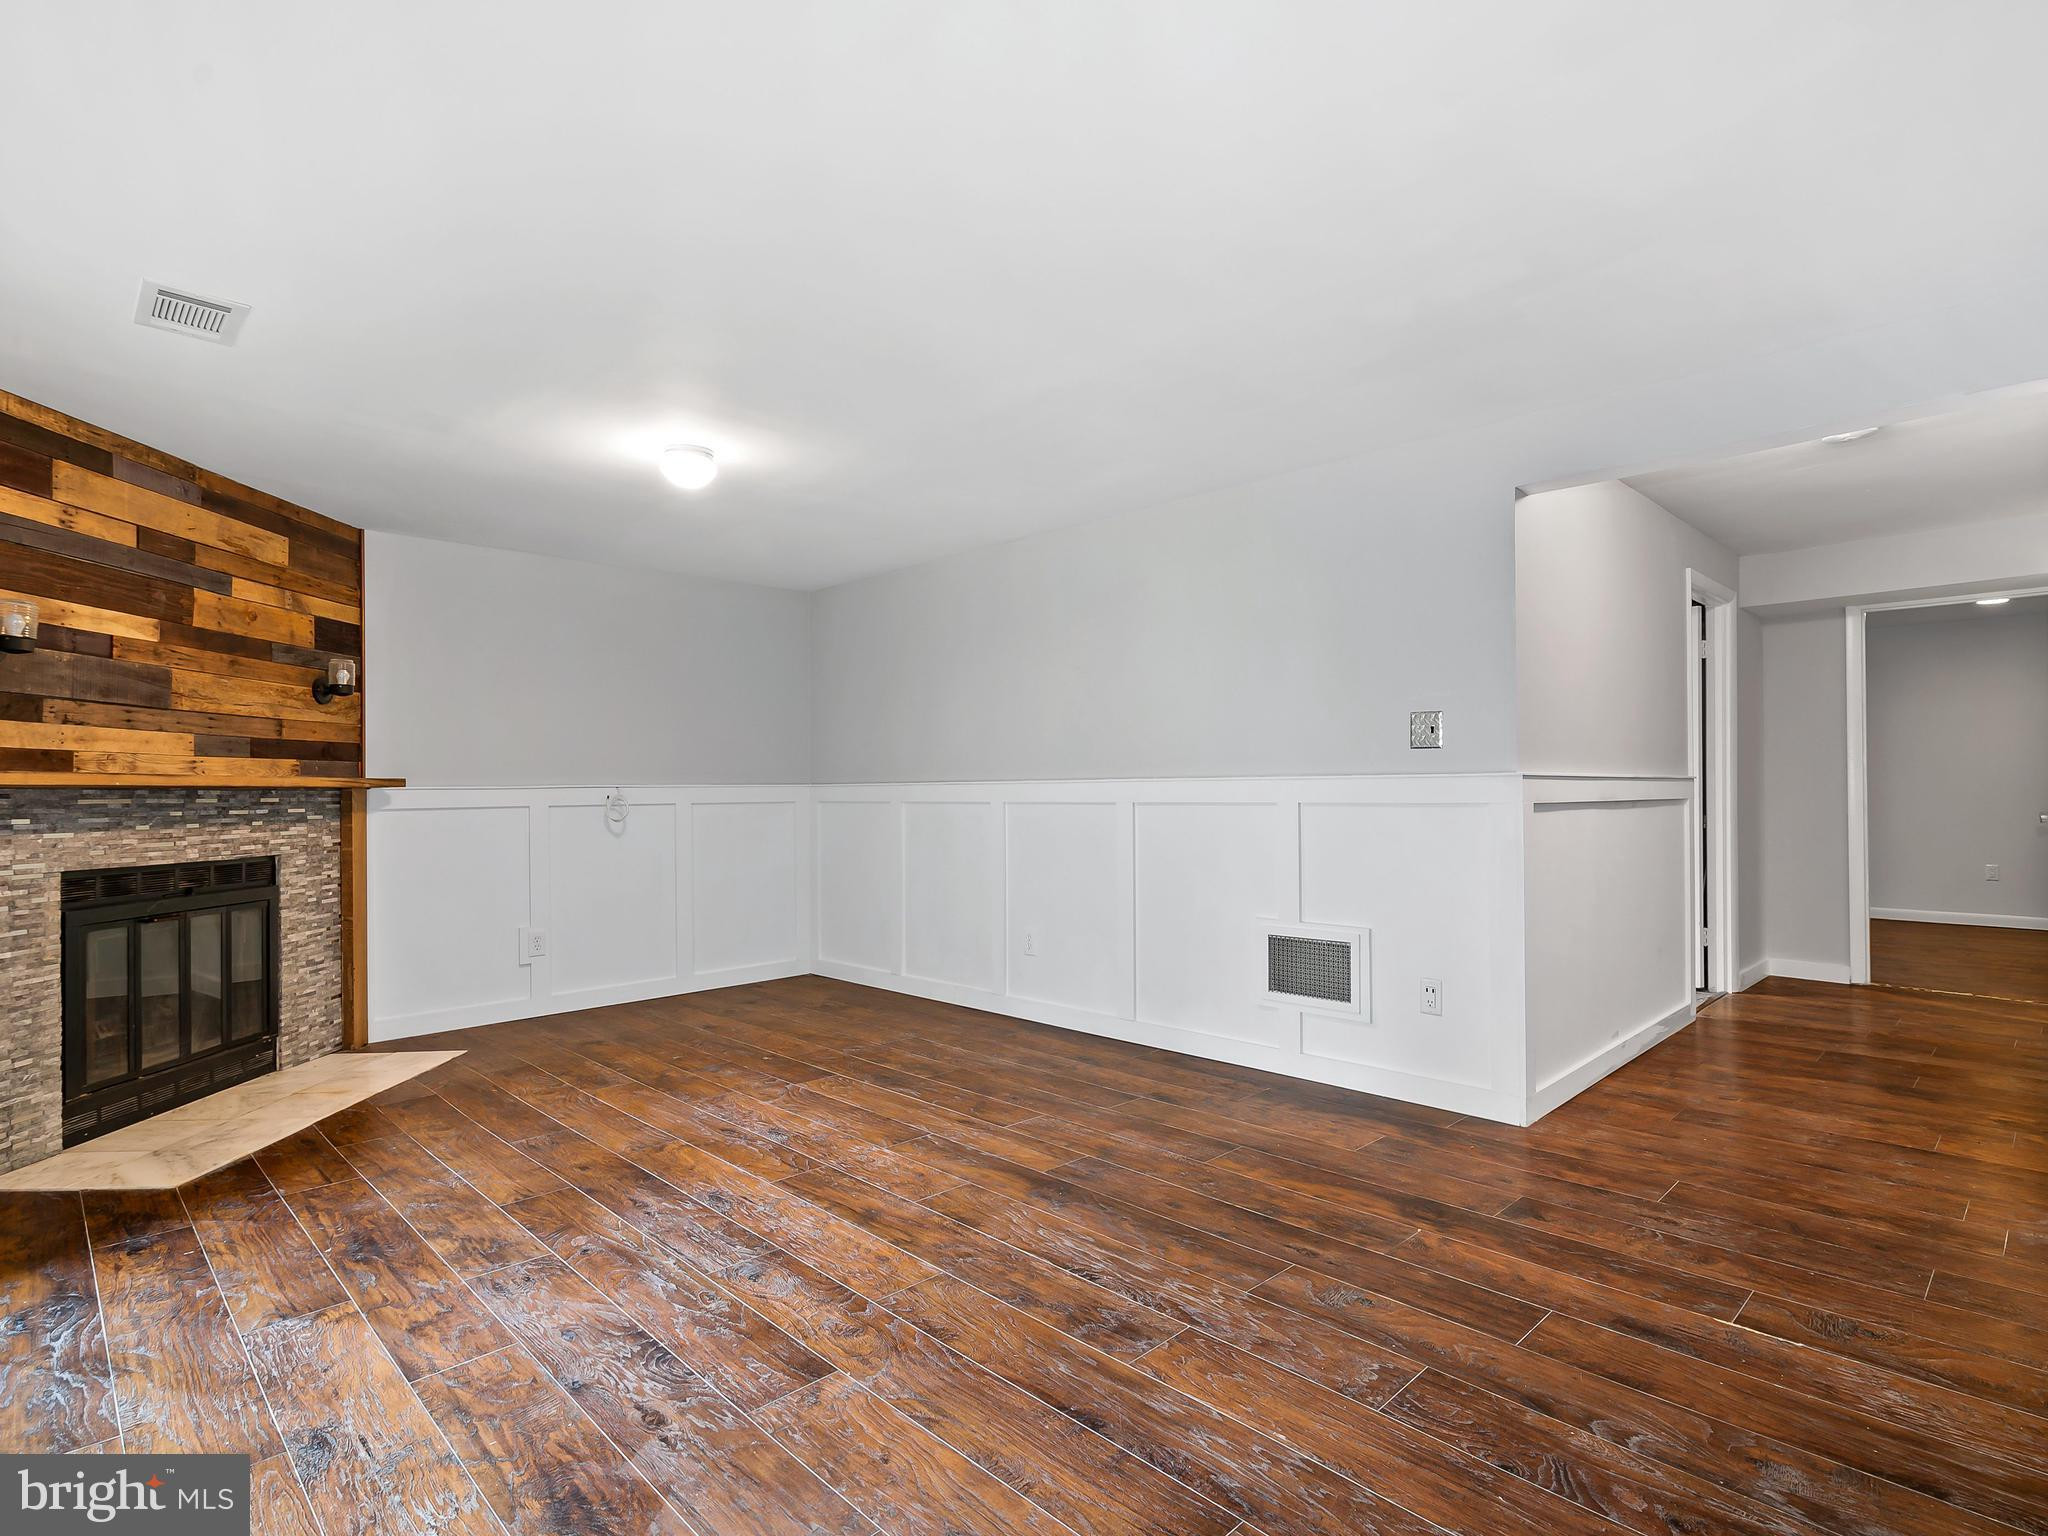 aaa hardwood flooring phoenix of 12251 roundwood rd unit 410 lutherville timonium md 21093 with 12251 roundwood rd unit 410 lutherville timonium md 21093 realestate com